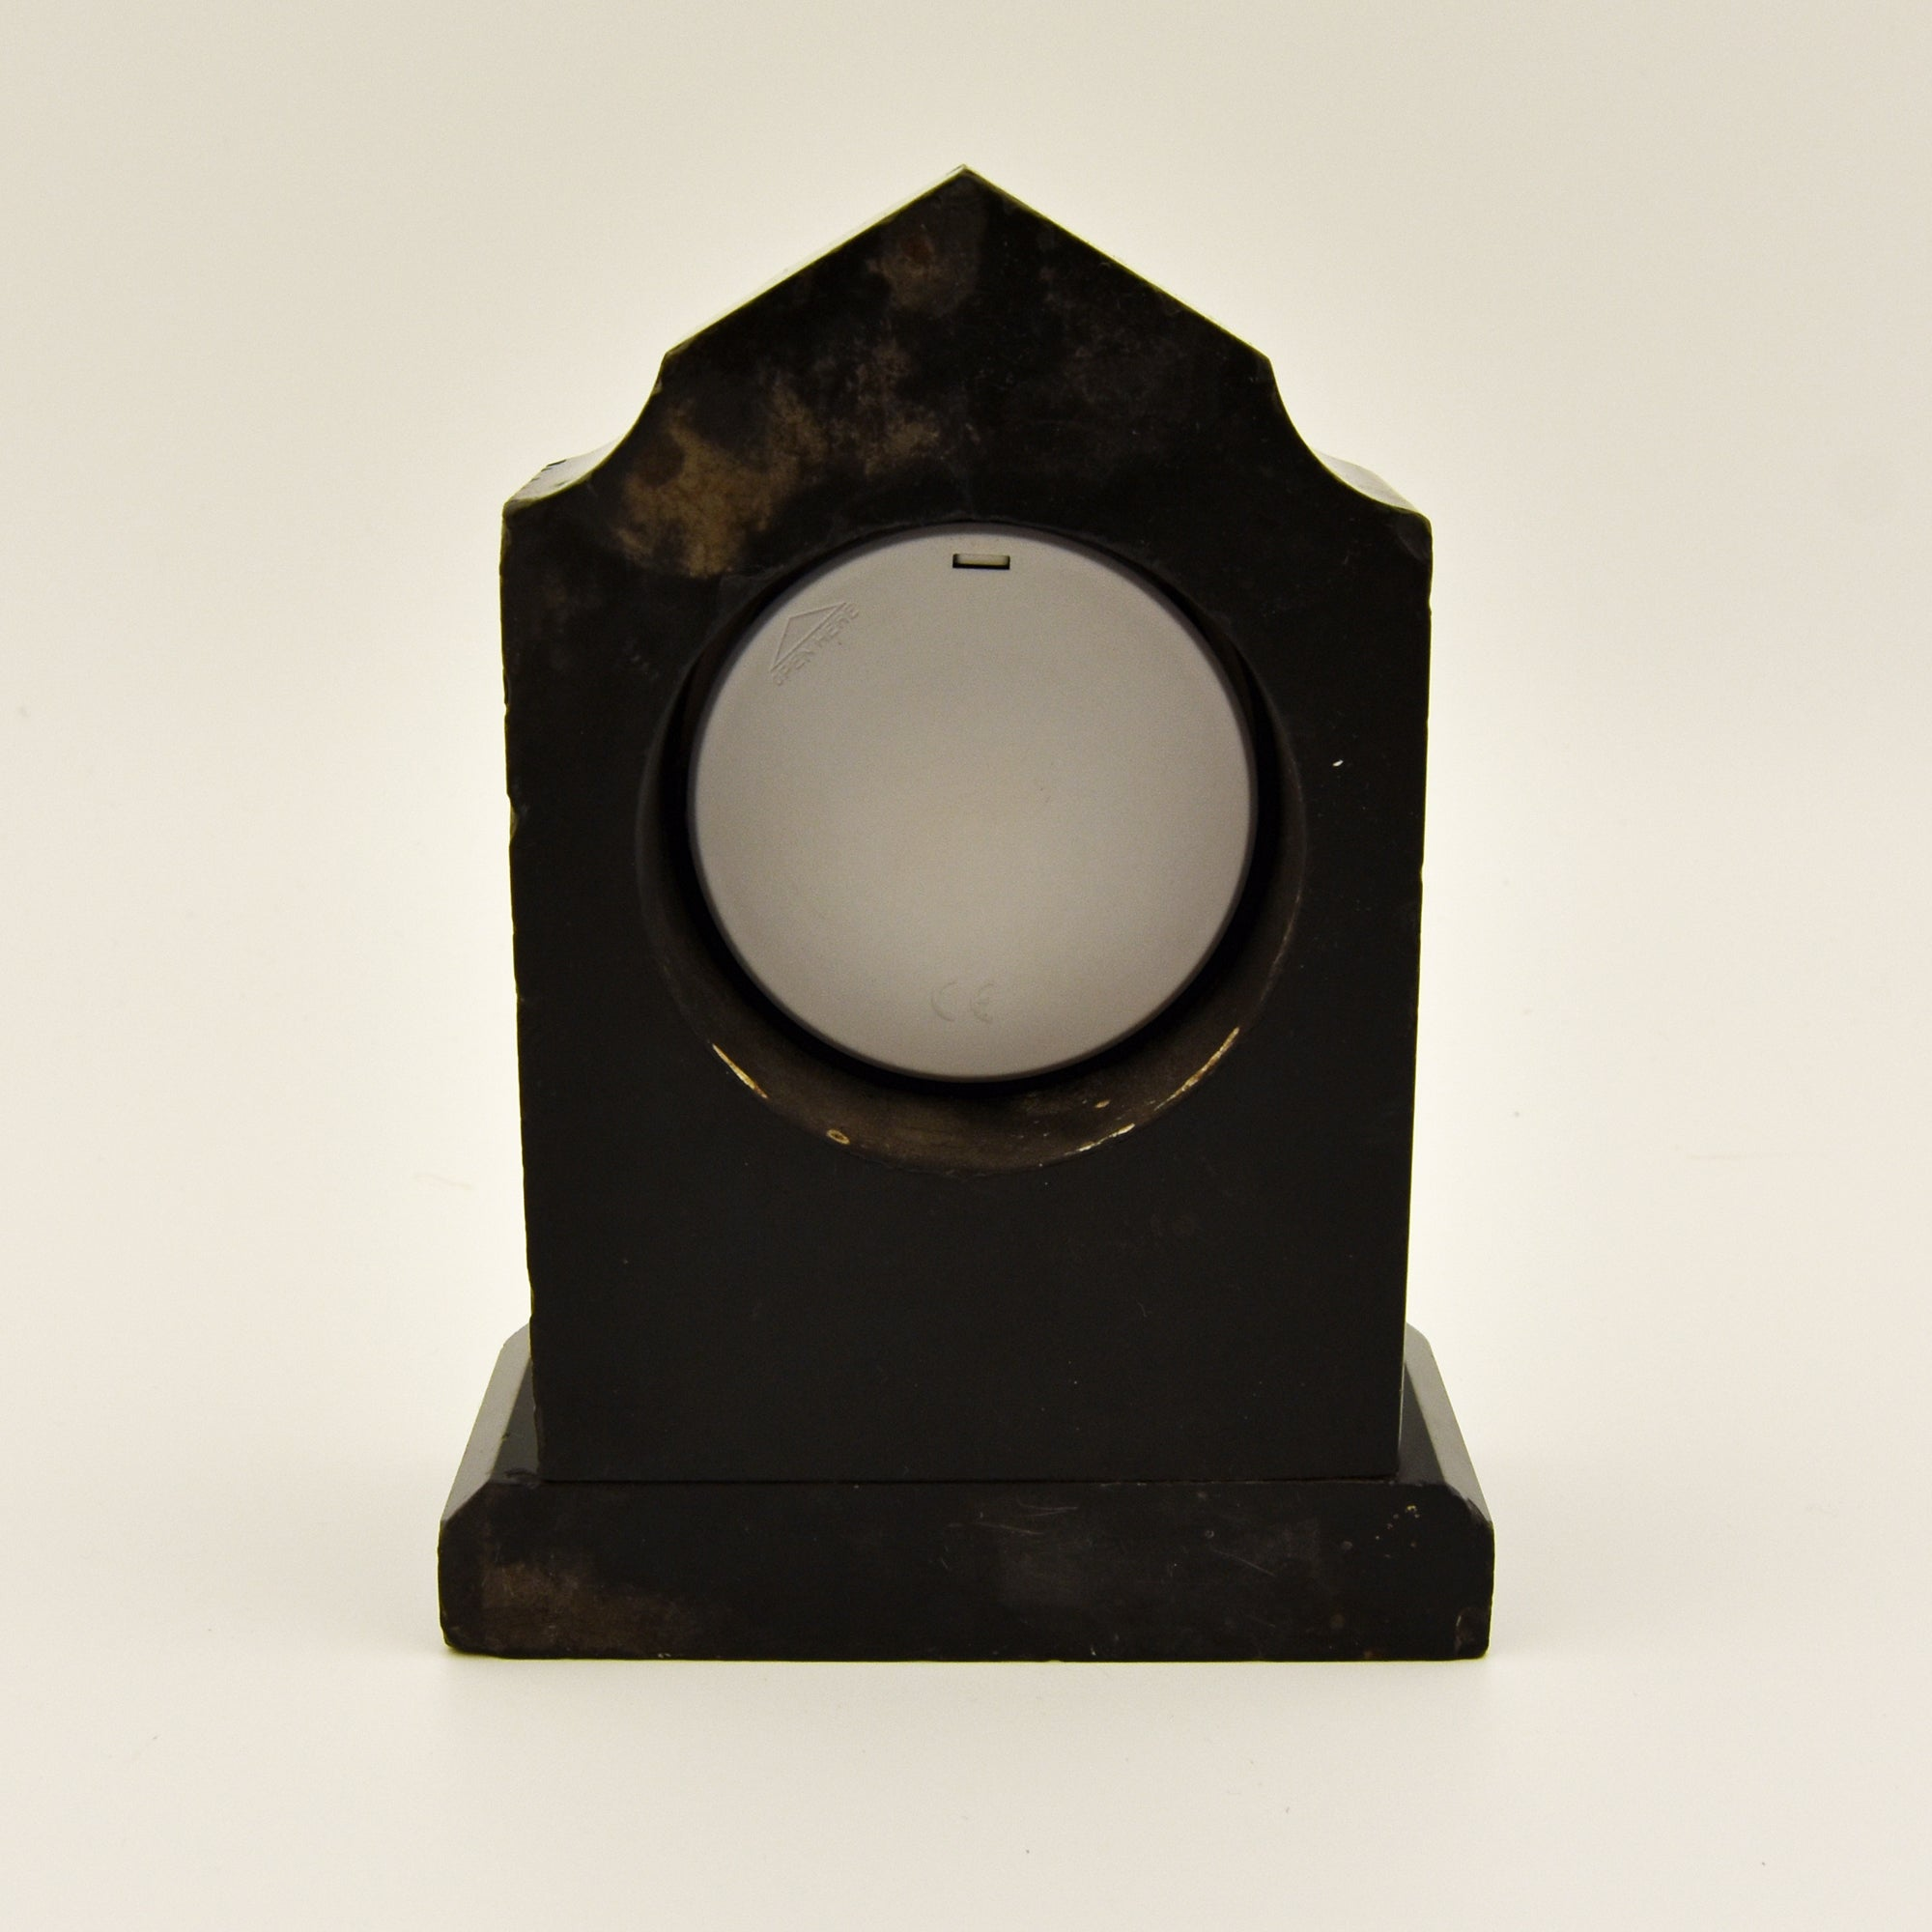 BLACK MARBLE MINIATURE CLOCK CASE WITH NEW QUARTZ INSERT